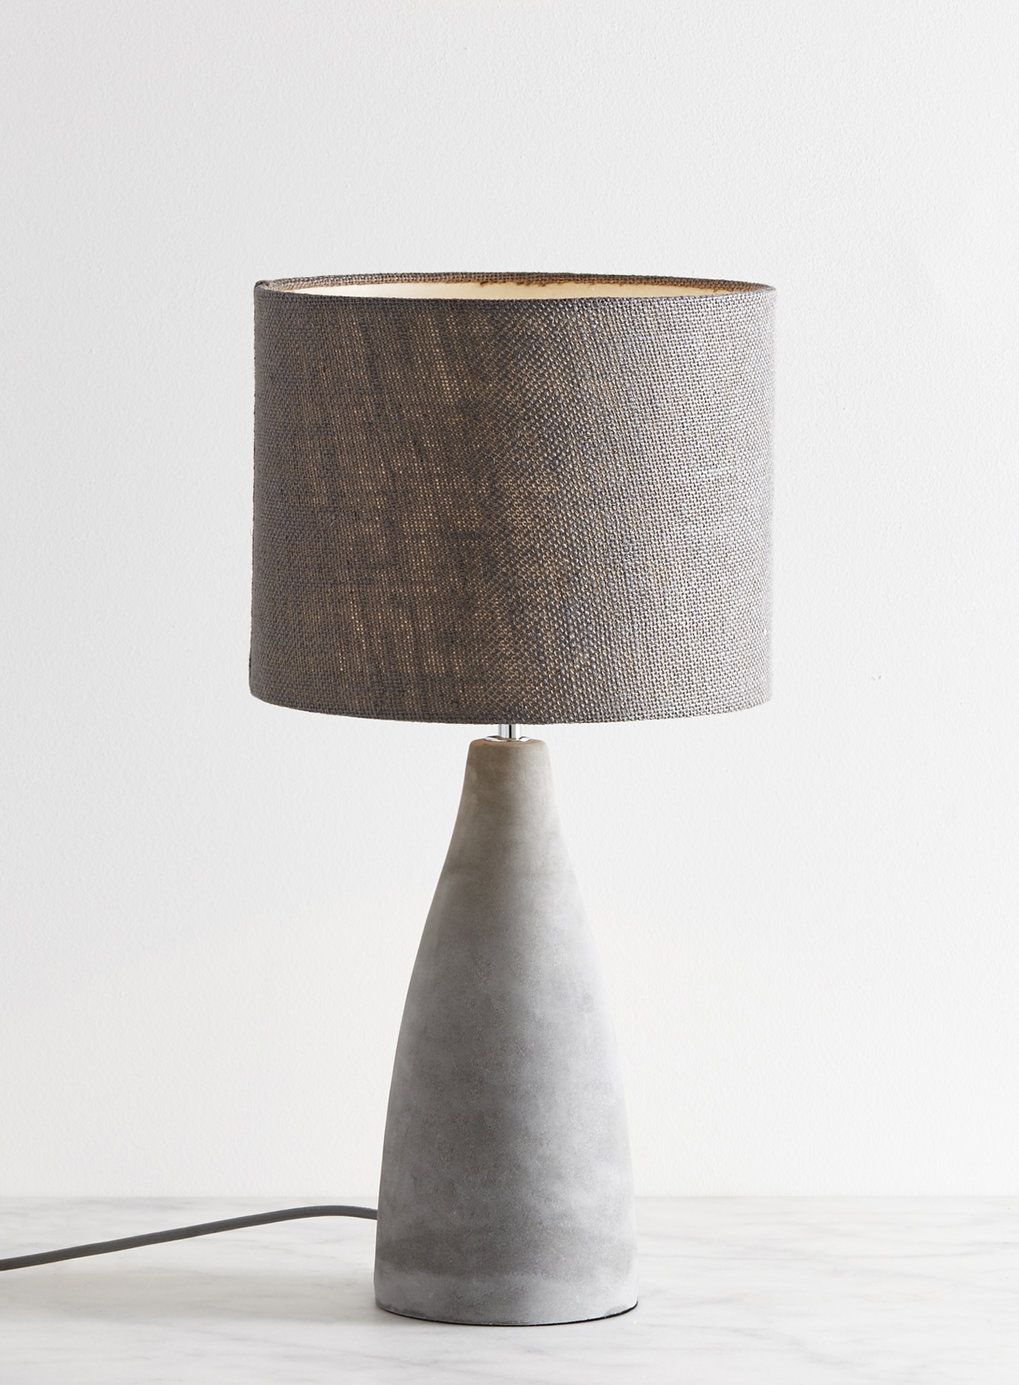 Fraser grey table lamp | Lamps | Pinterest | Grey table lamps ...